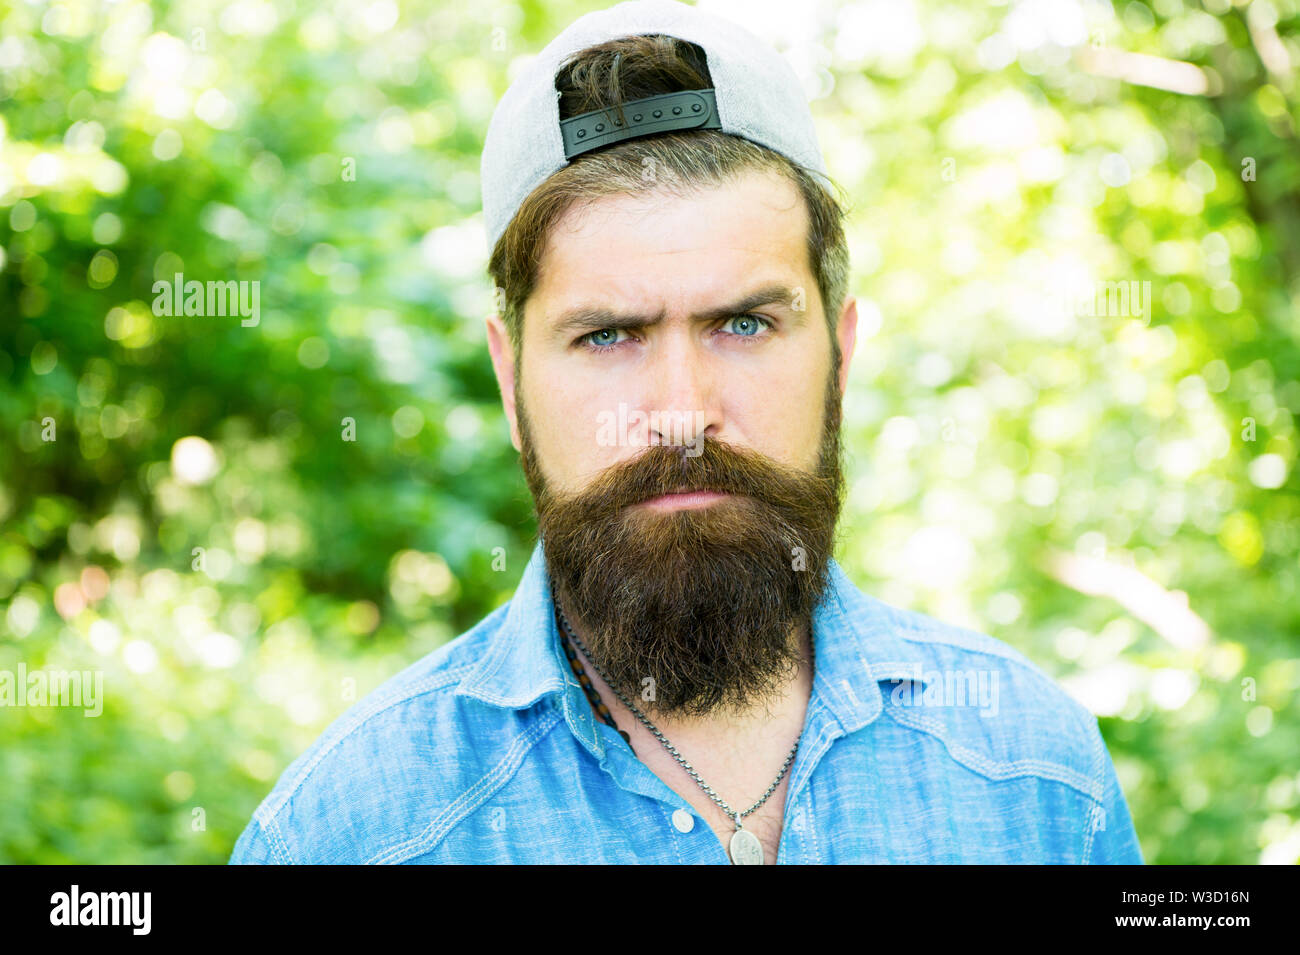 serious bearded man. Mature hipster with beard. male facial care. brutal man with beard. barber. hispter style. Fashion portrait of man. Hair beard care. guy in wood. summer camping. Indulge yourself. Stock Photo